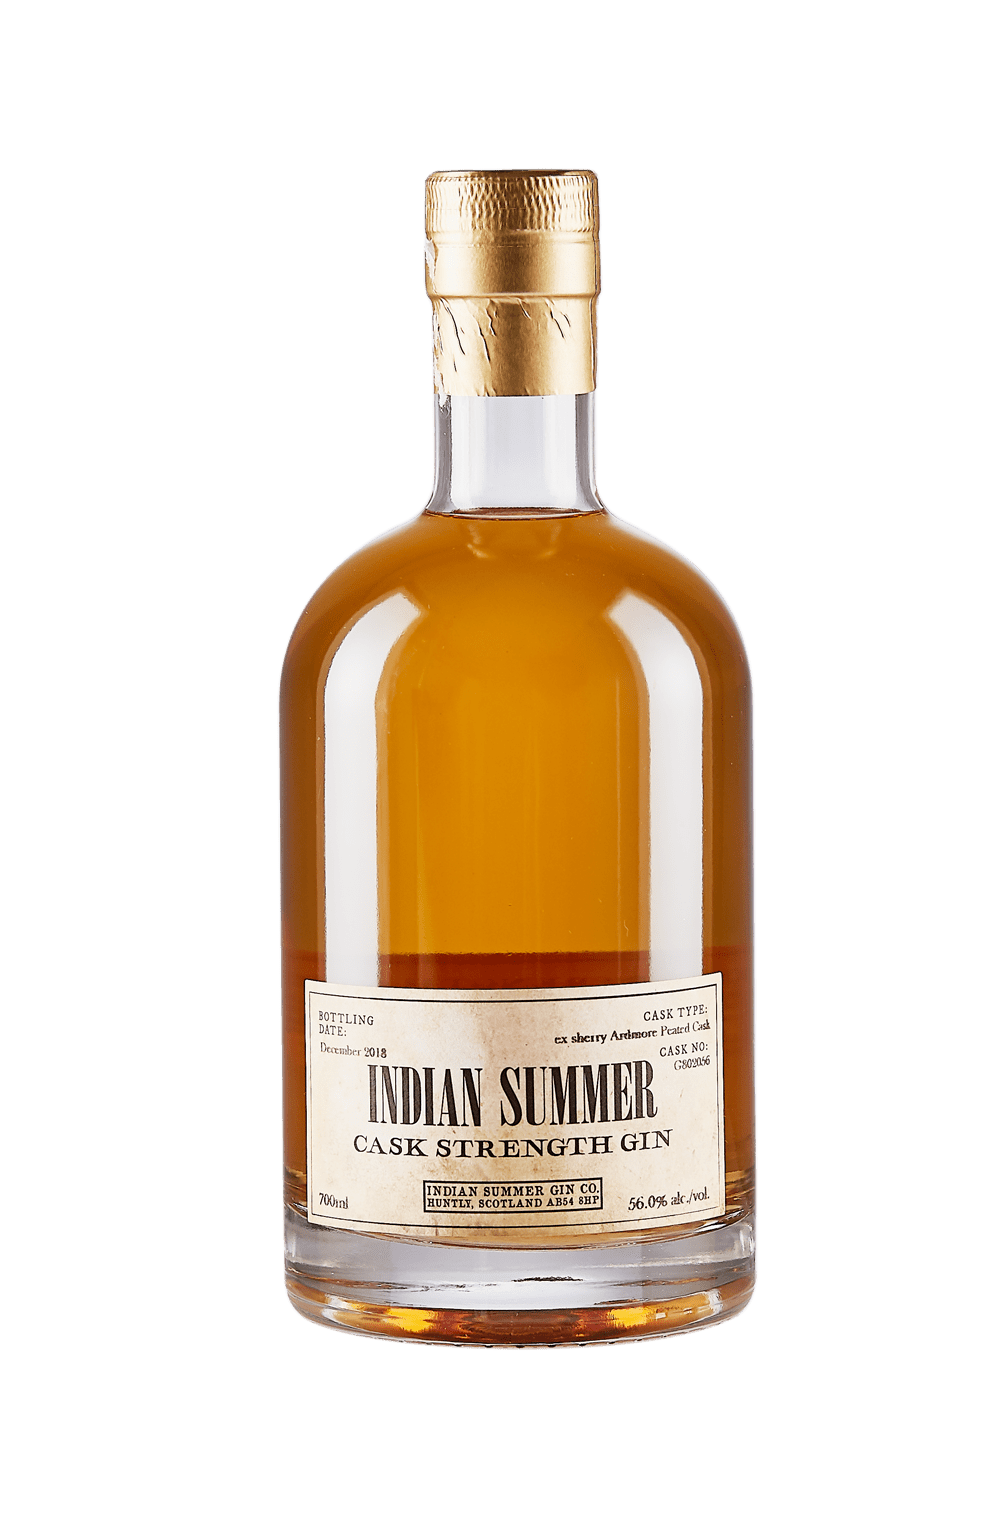 Indian Summer Ardmore Cask Strength Gin